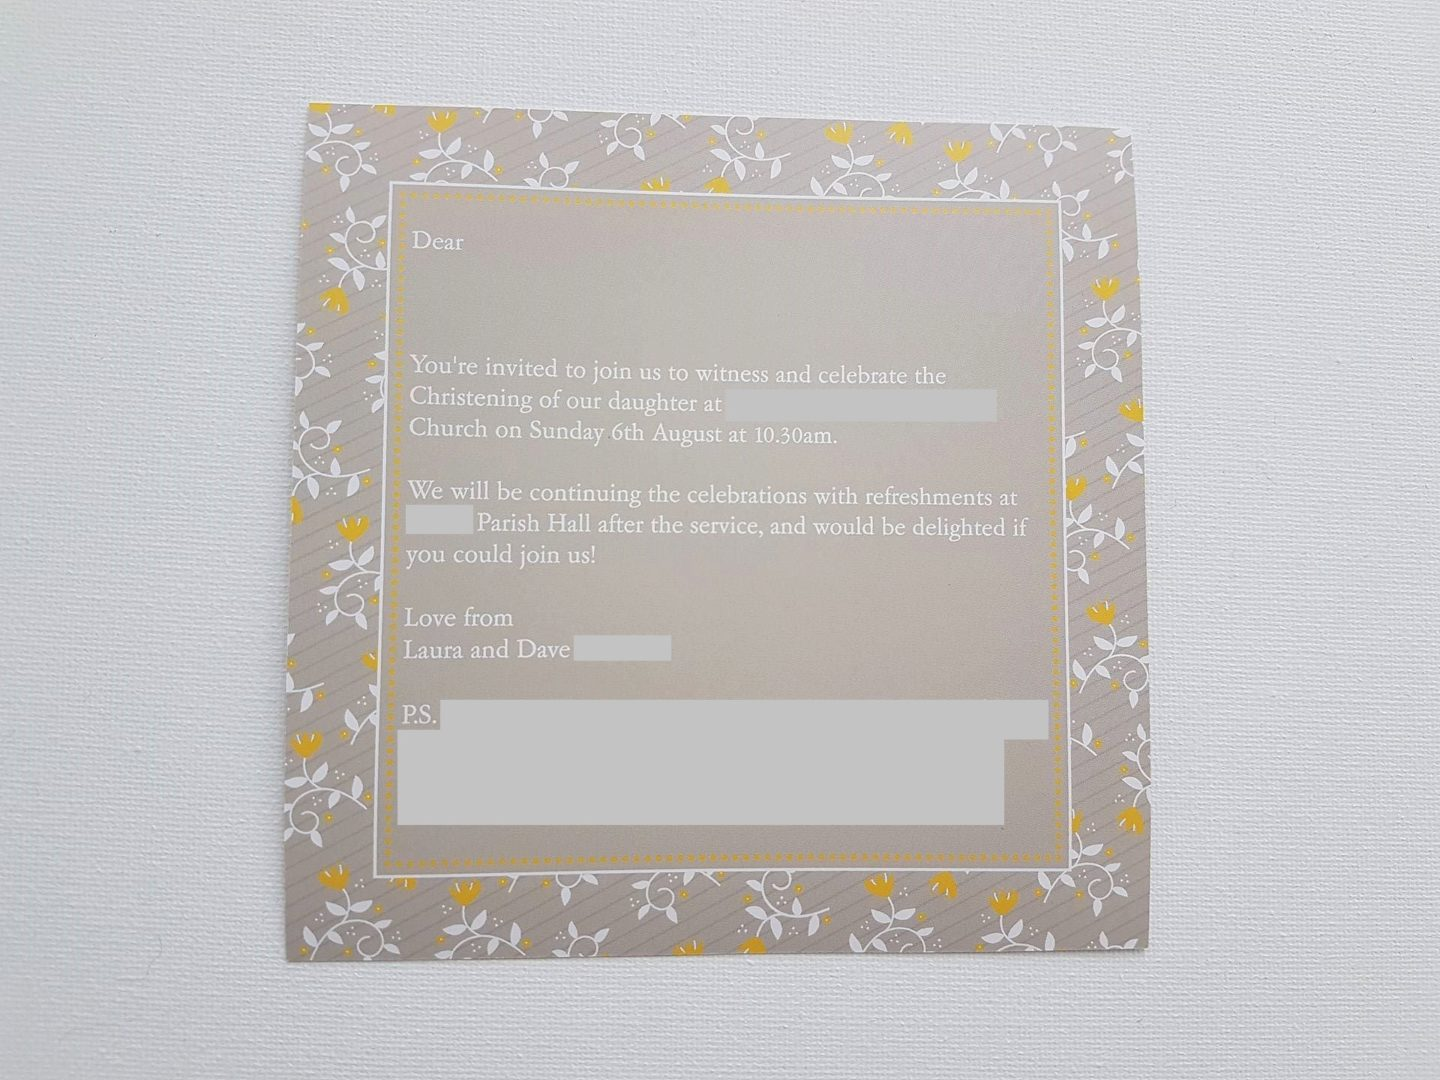 Christening invitation, back